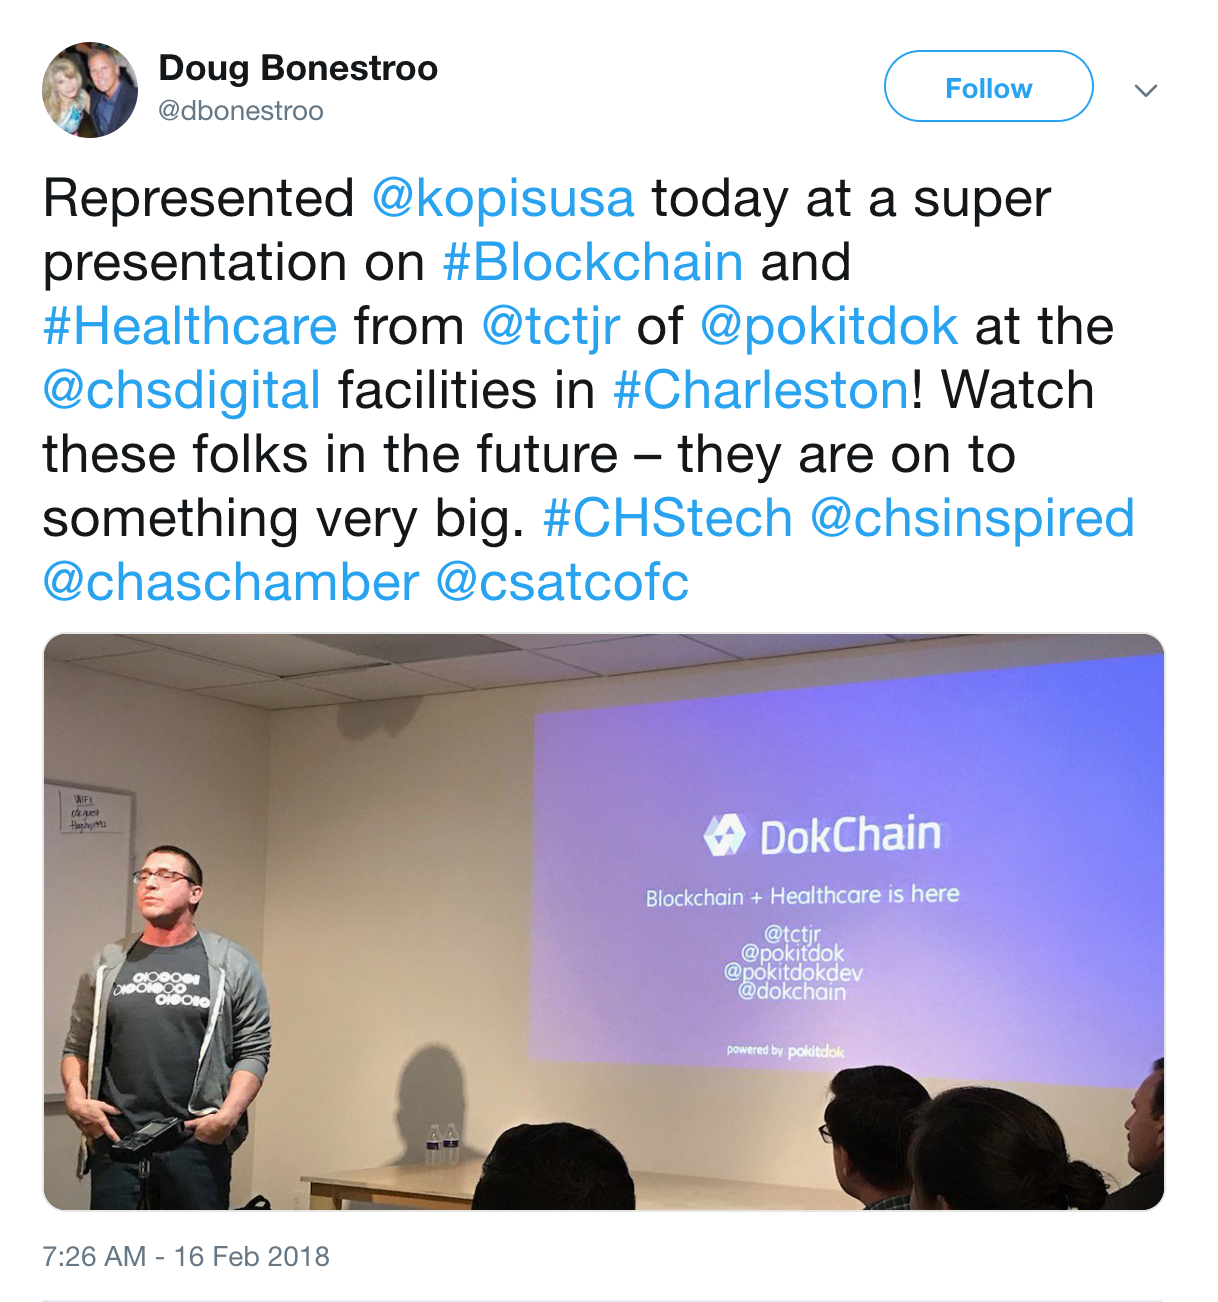 dokchain-supply-chain-4.jpg